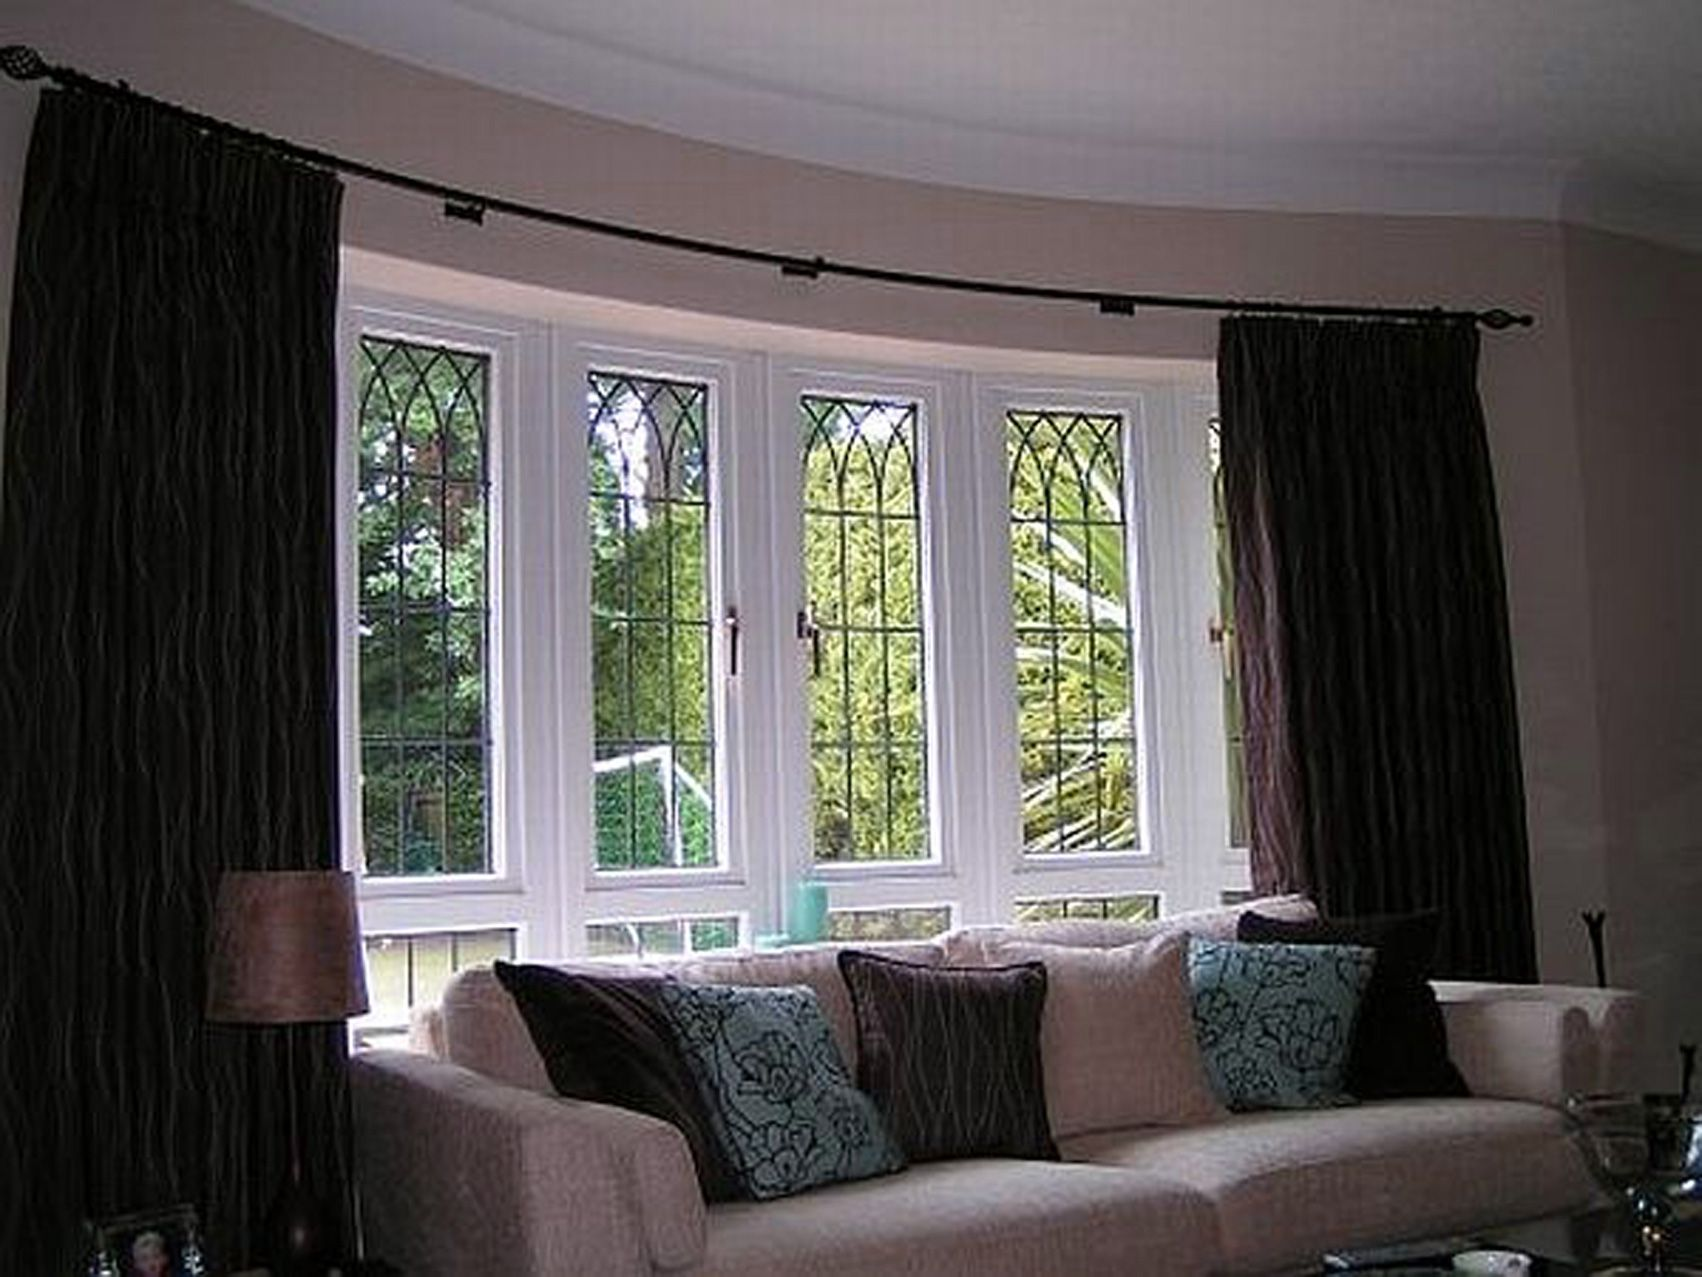 Pictures Of Curtains Next To Two Windows Ideas Yahoo